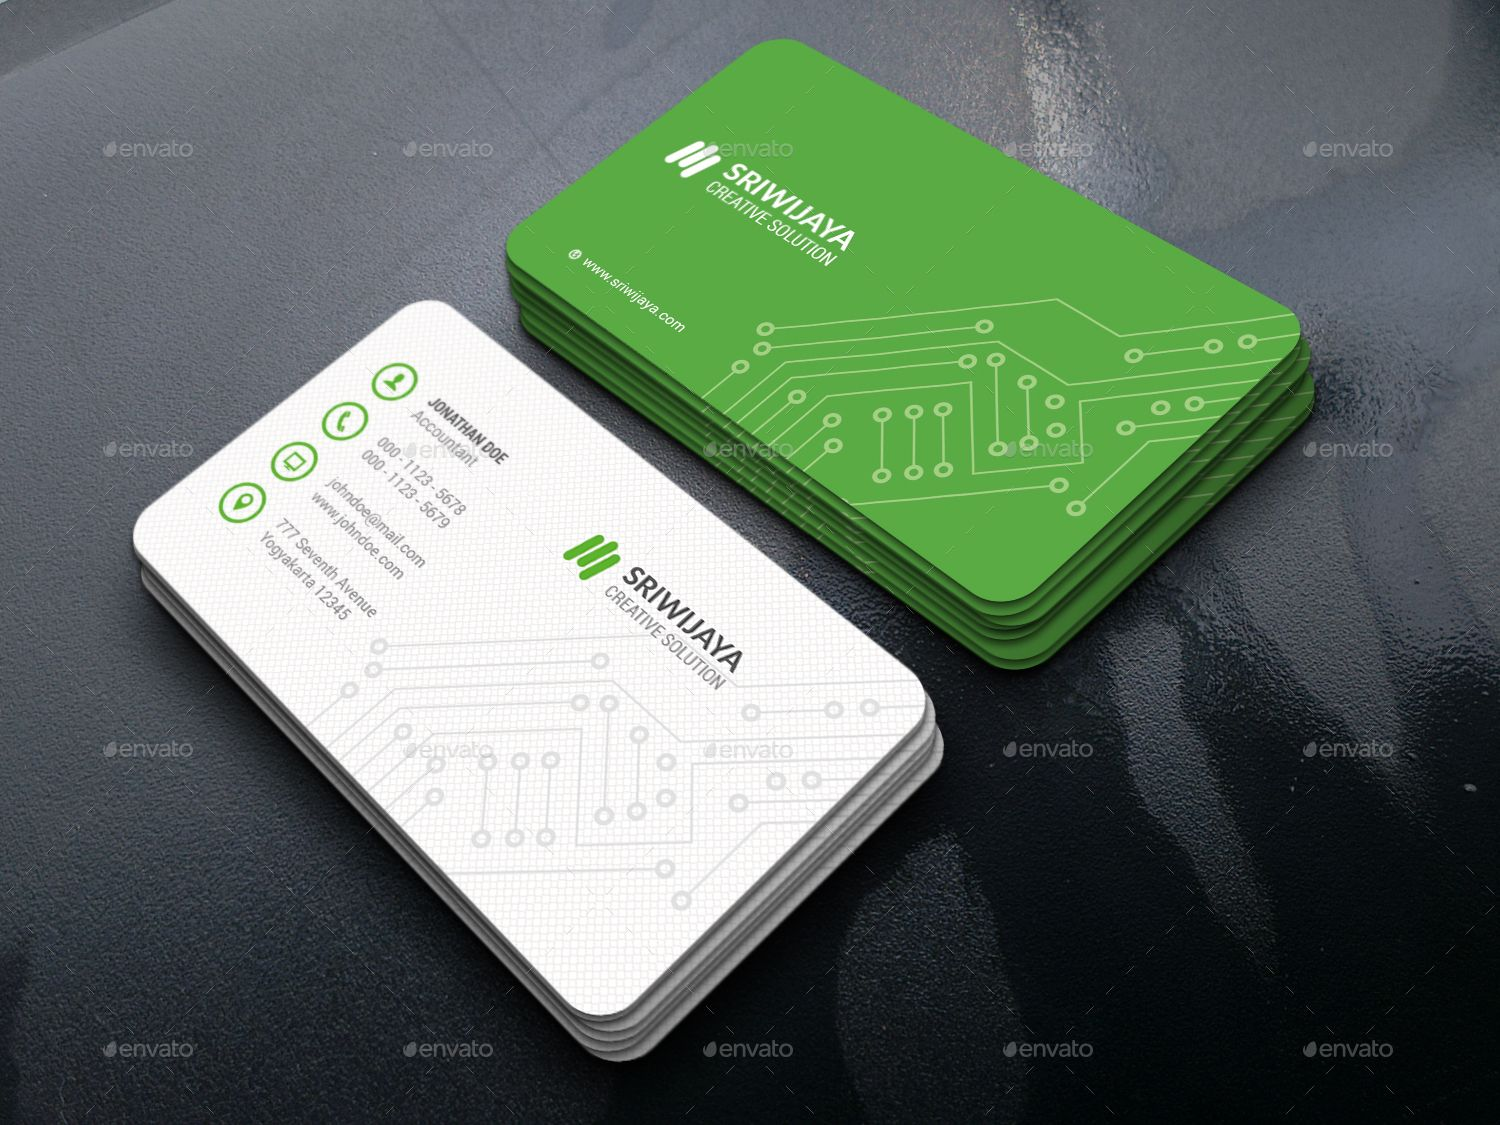 Business Card Electronic Engineer Image collections - Card Design ...